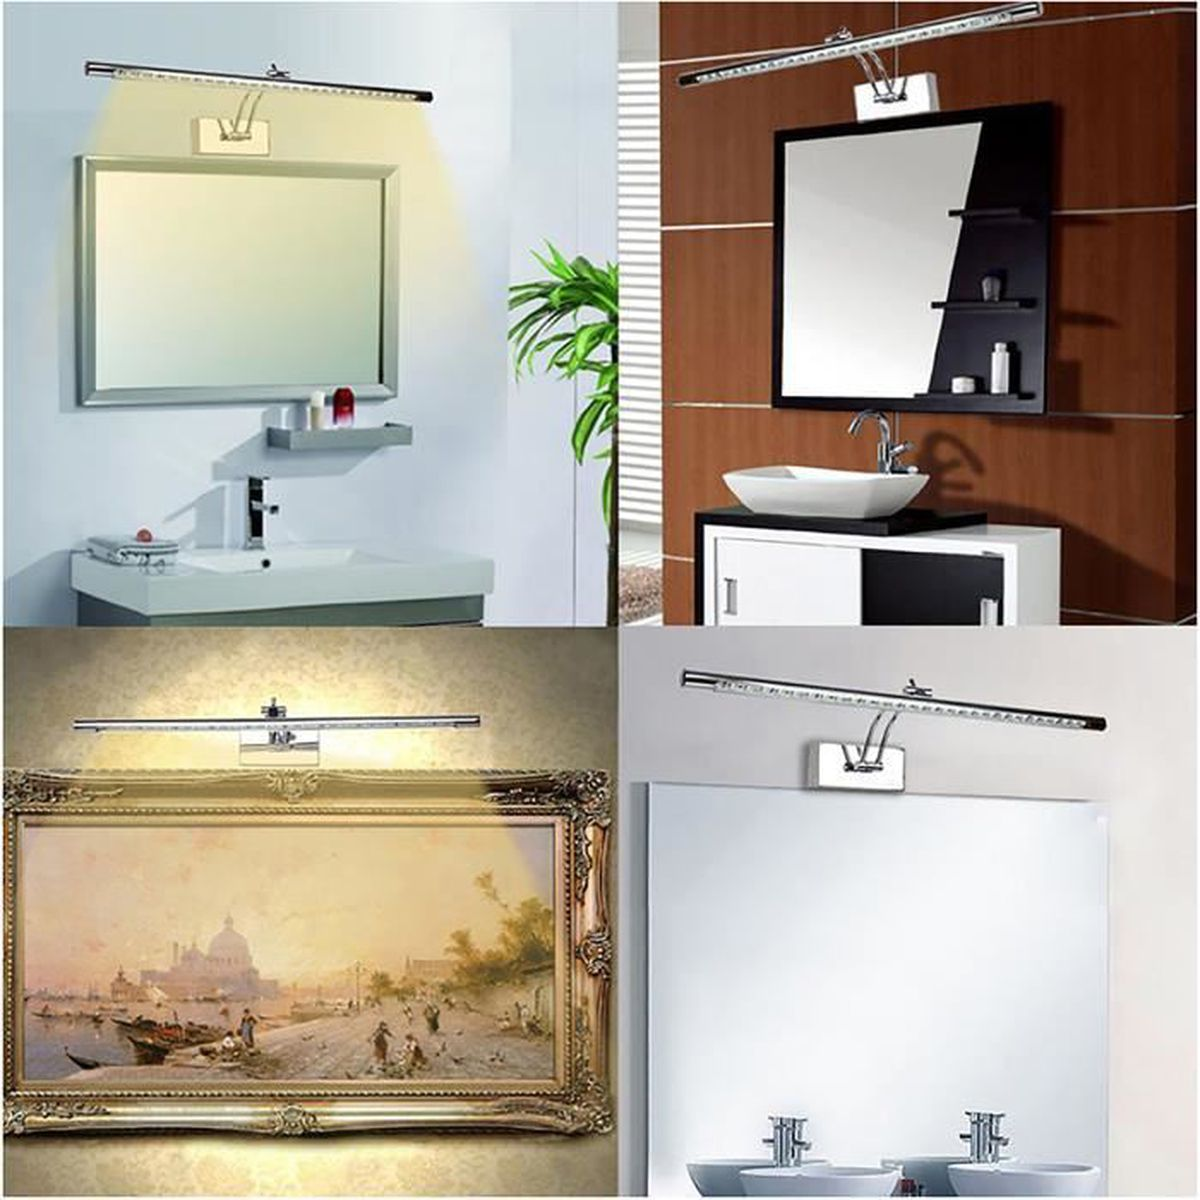 liqoo led lampe de salle de bain miroir mural 9w applique imperm able commutateur blanc froid. Black Bedroom Furniture Sets. Home Design Ideas